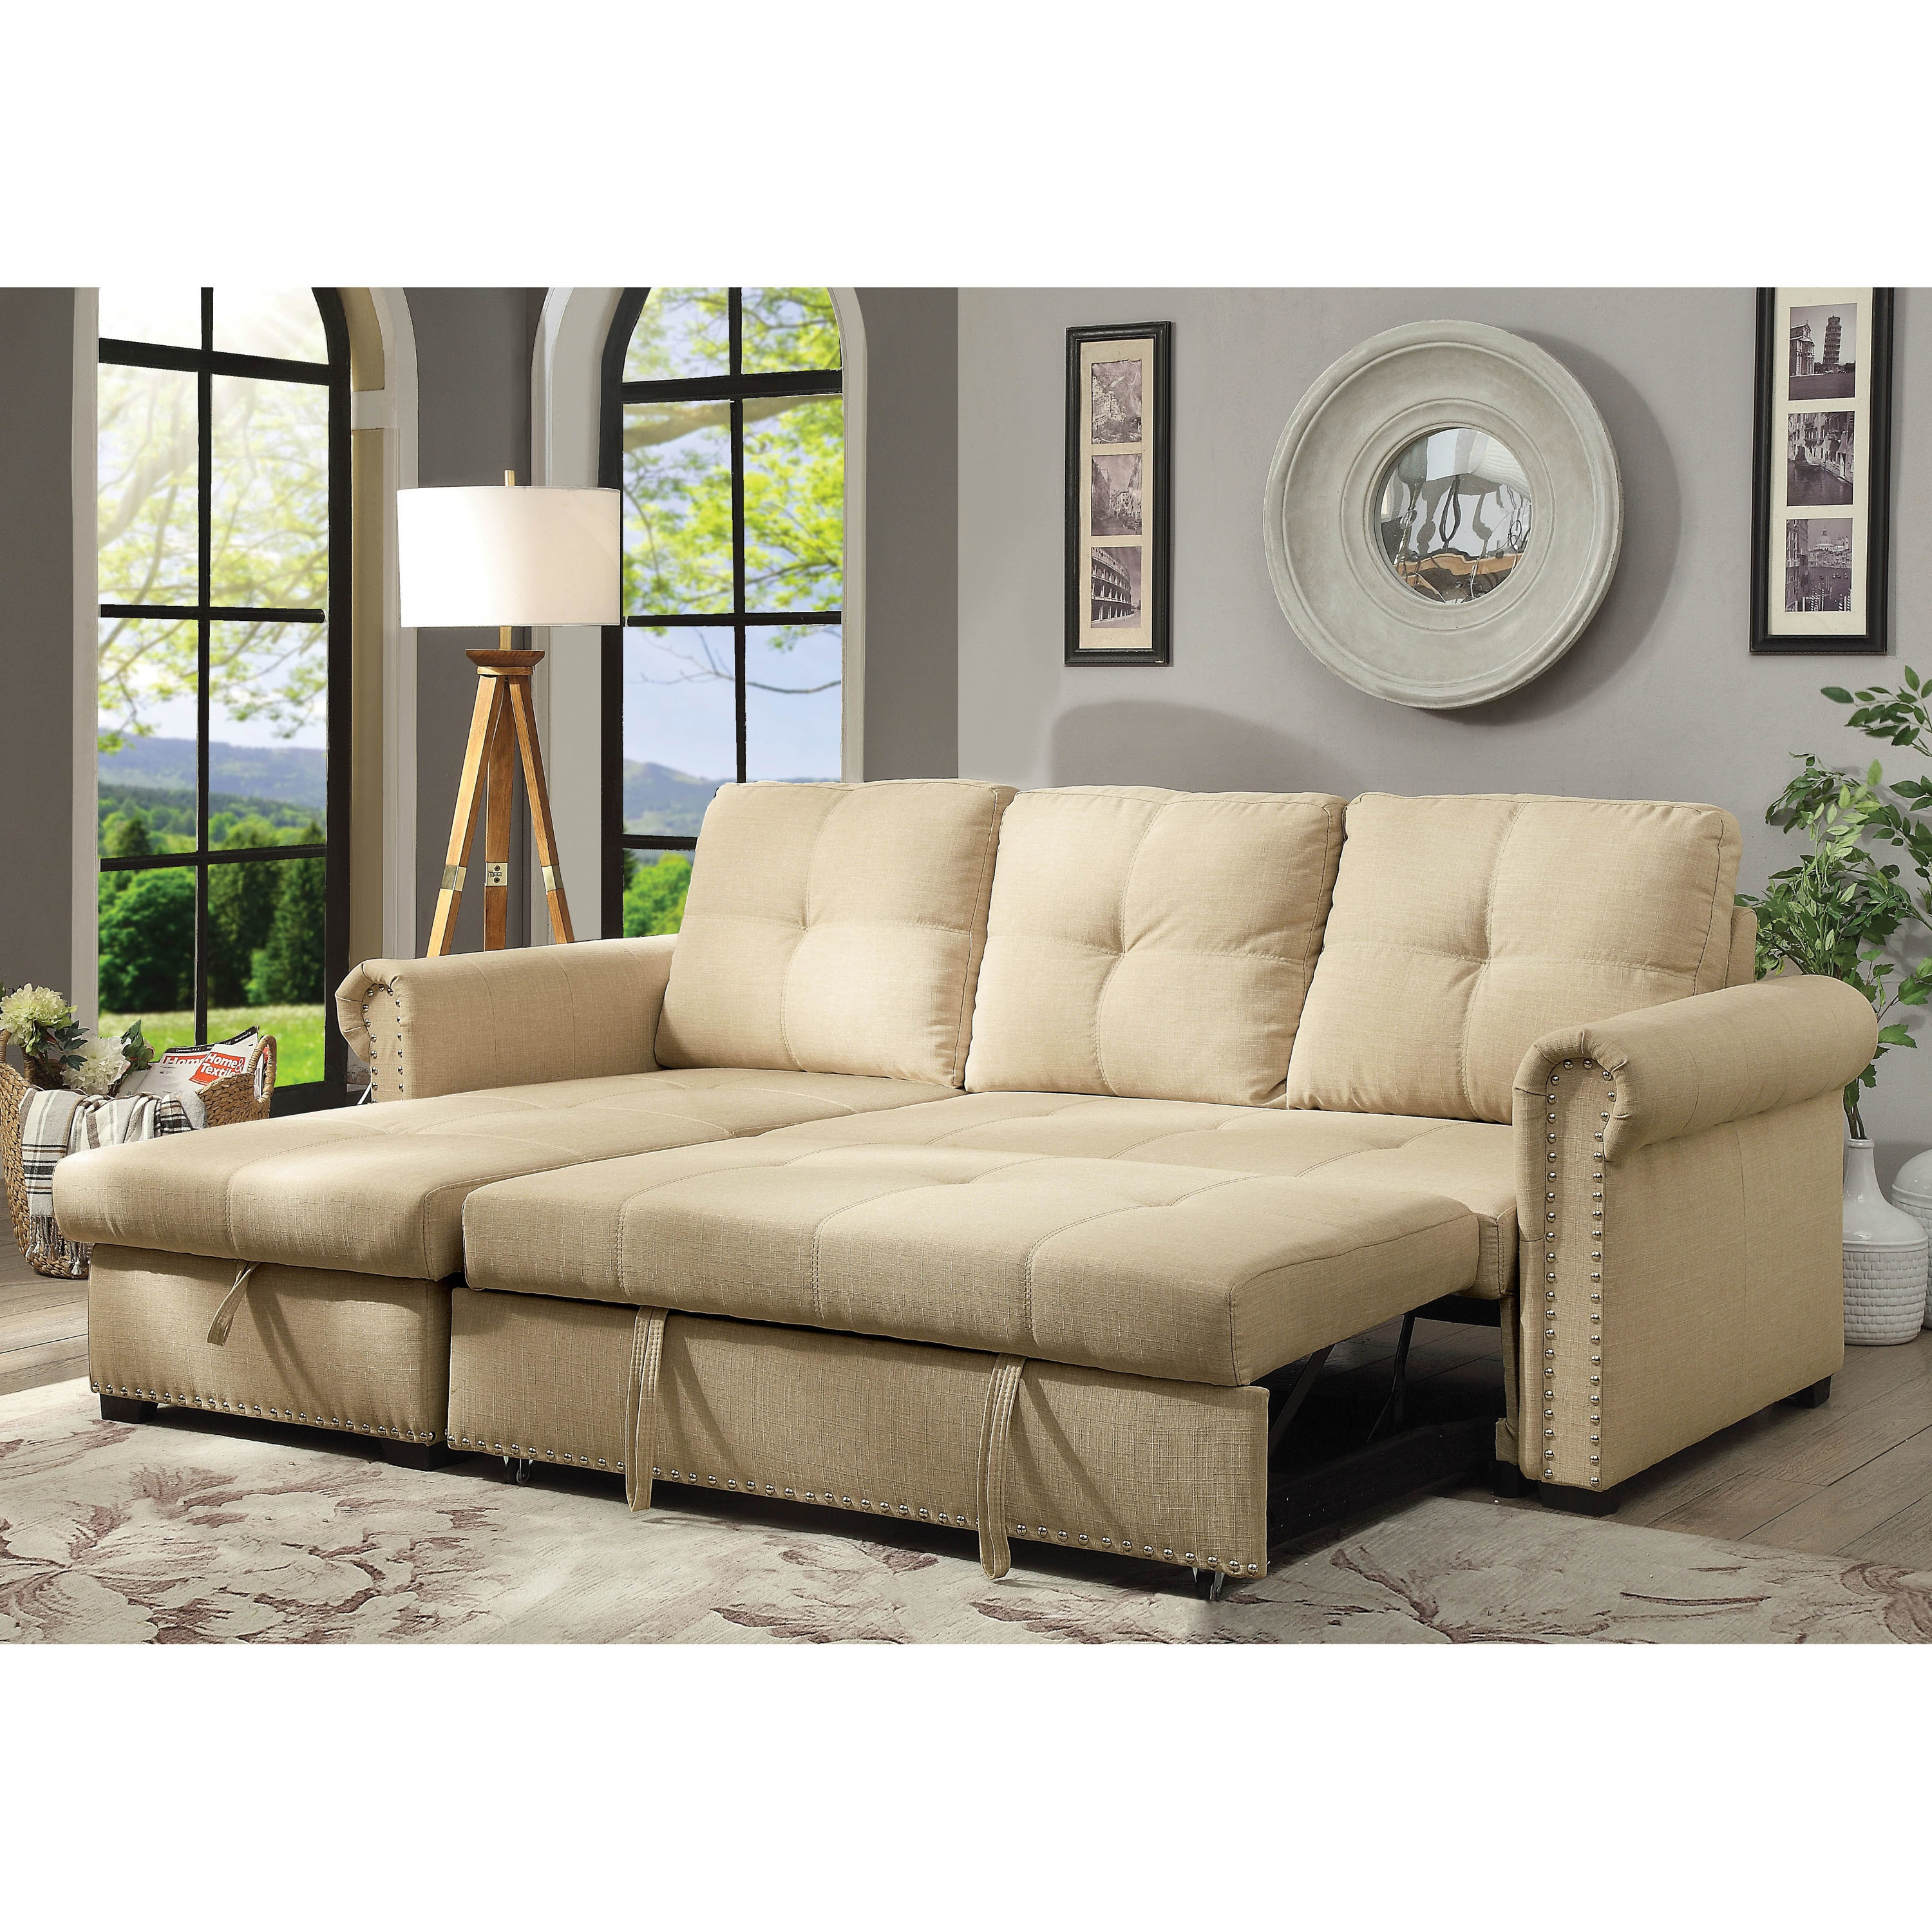 Furniture of America Dell Transitional Beige Sectional Sofa Sleeper